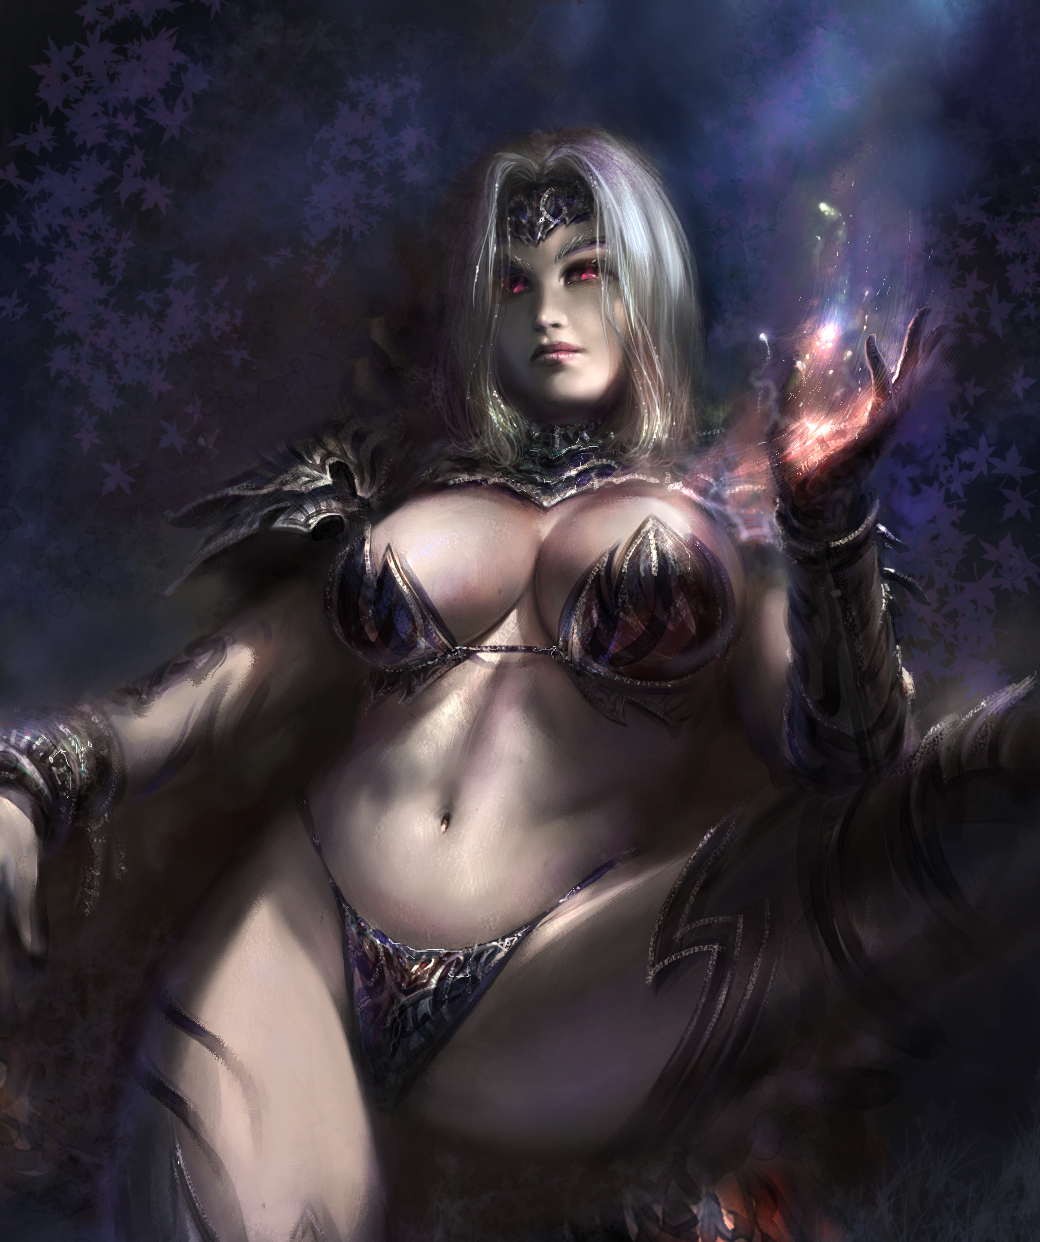 Dark fantasy artwork nude hentai download